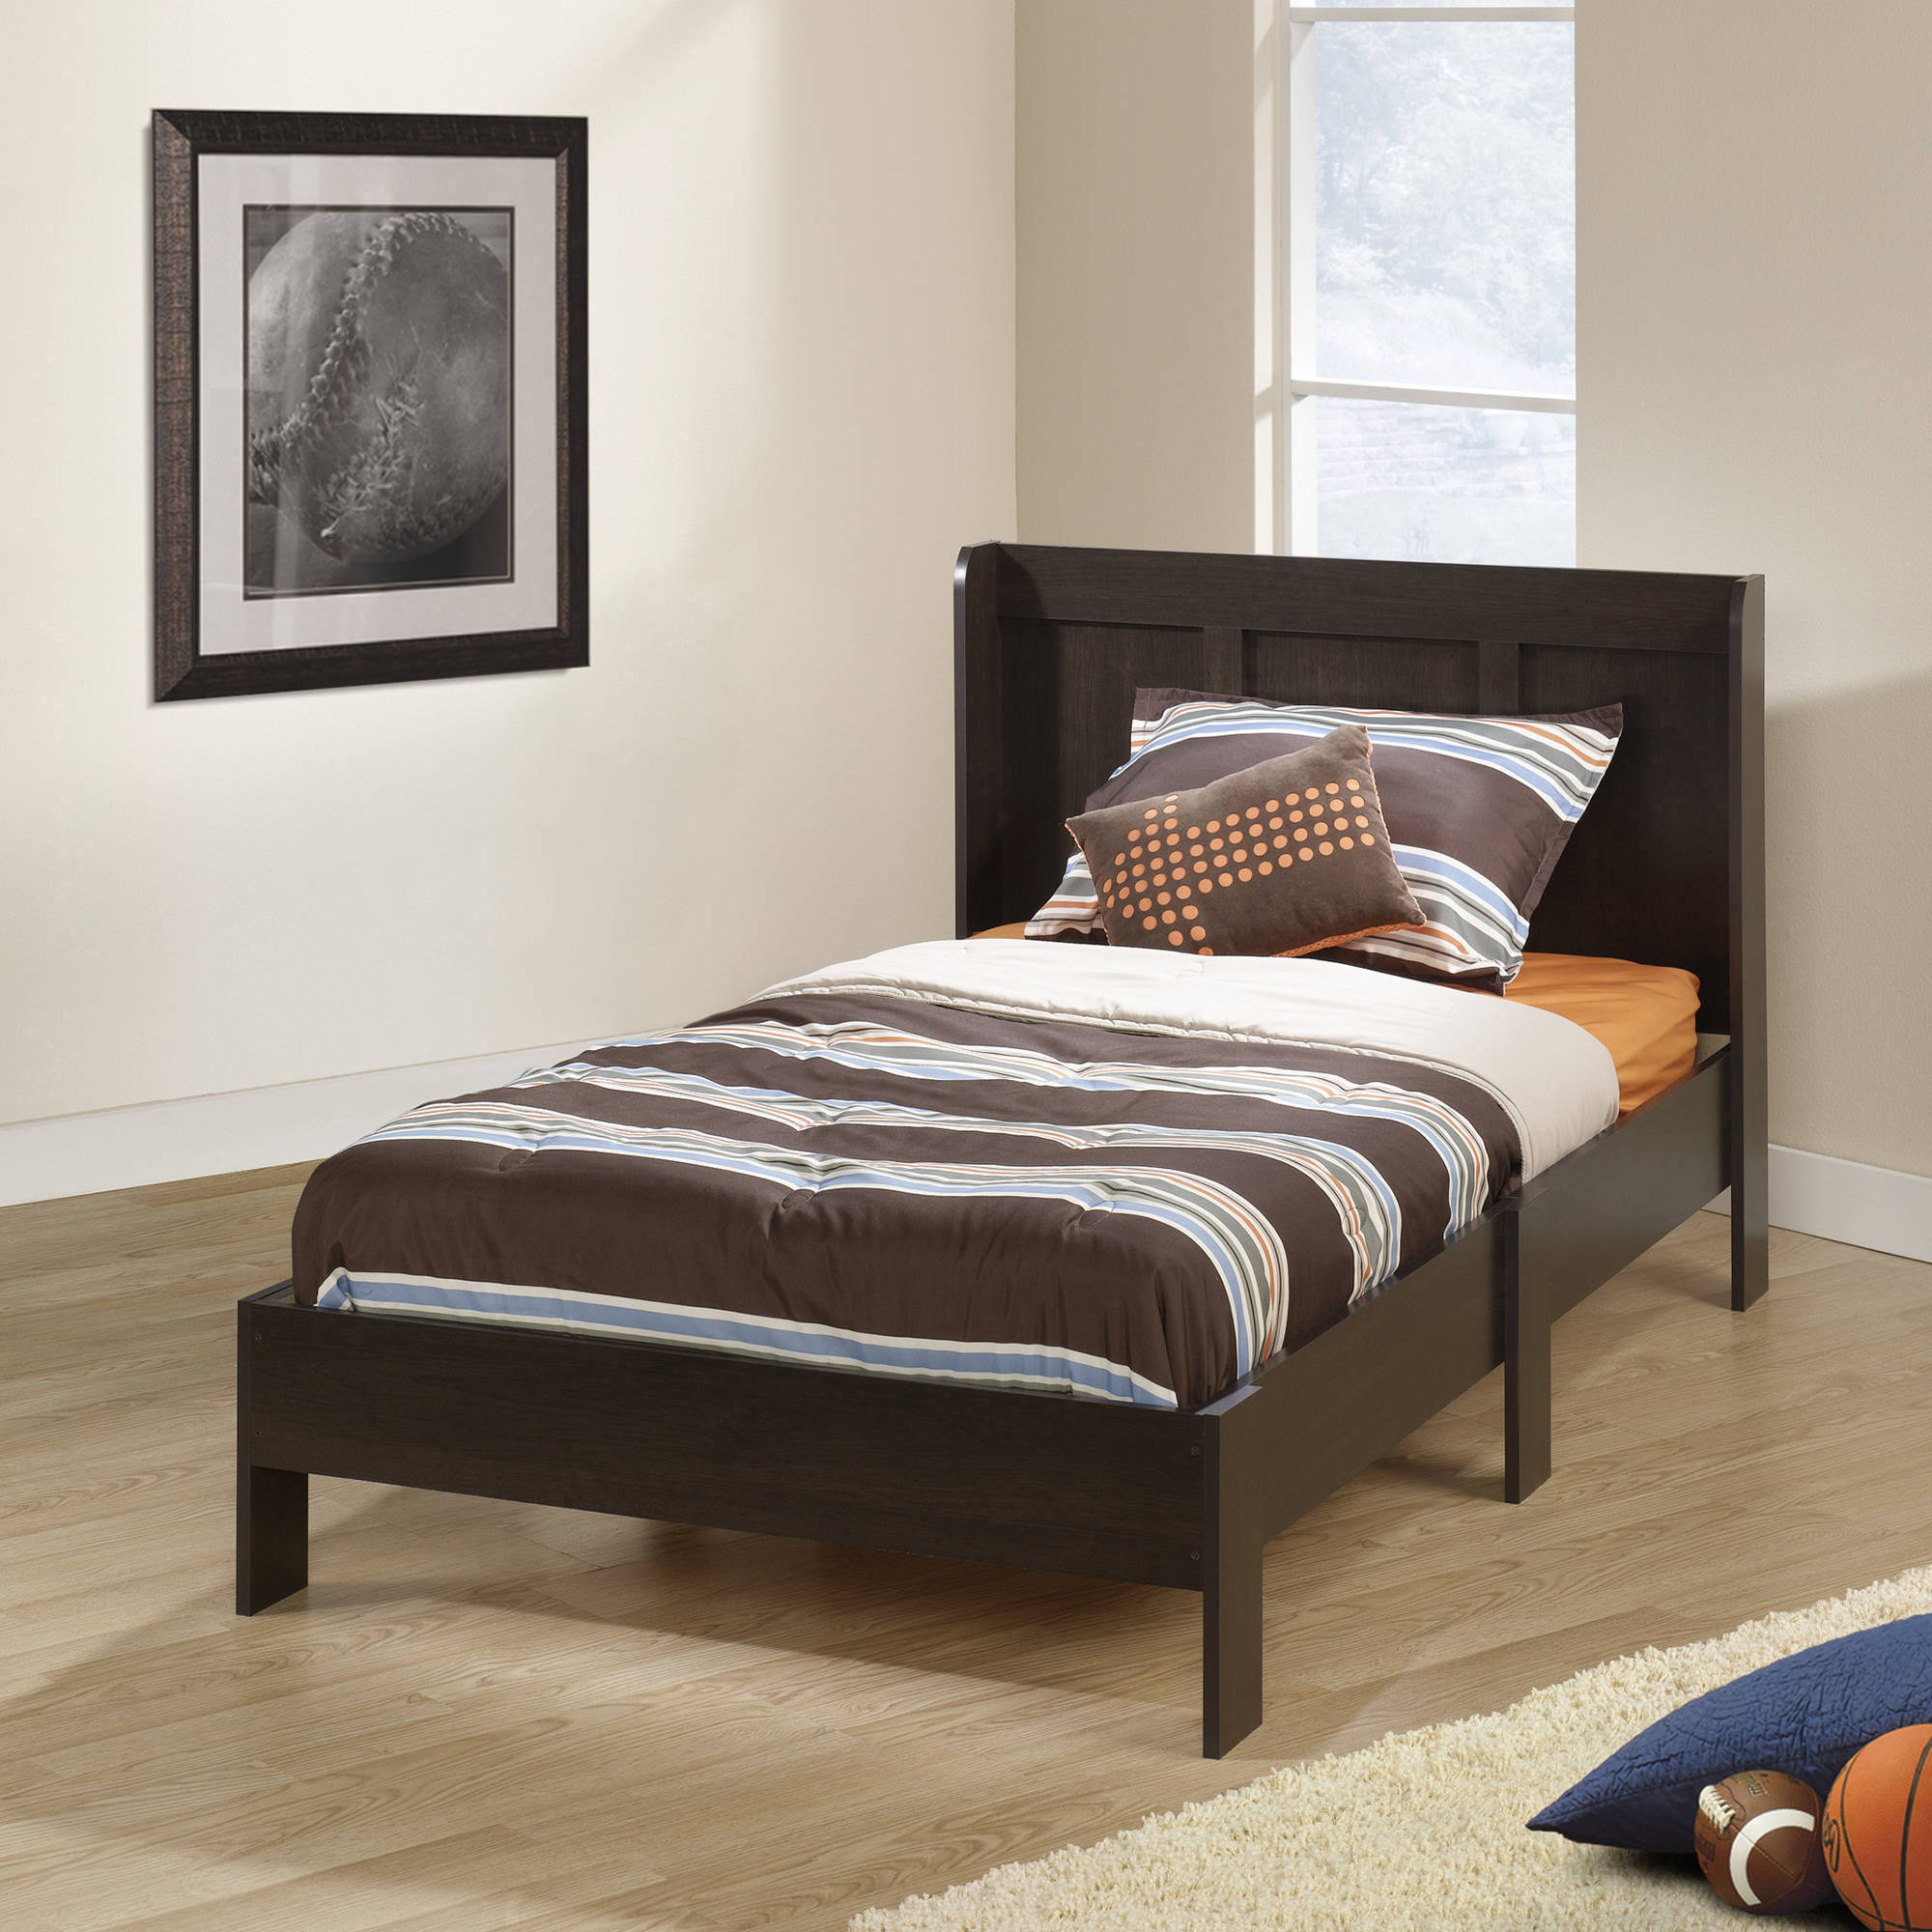 Sauder Parklane Twin Platform Bed with Headboard, Espresso